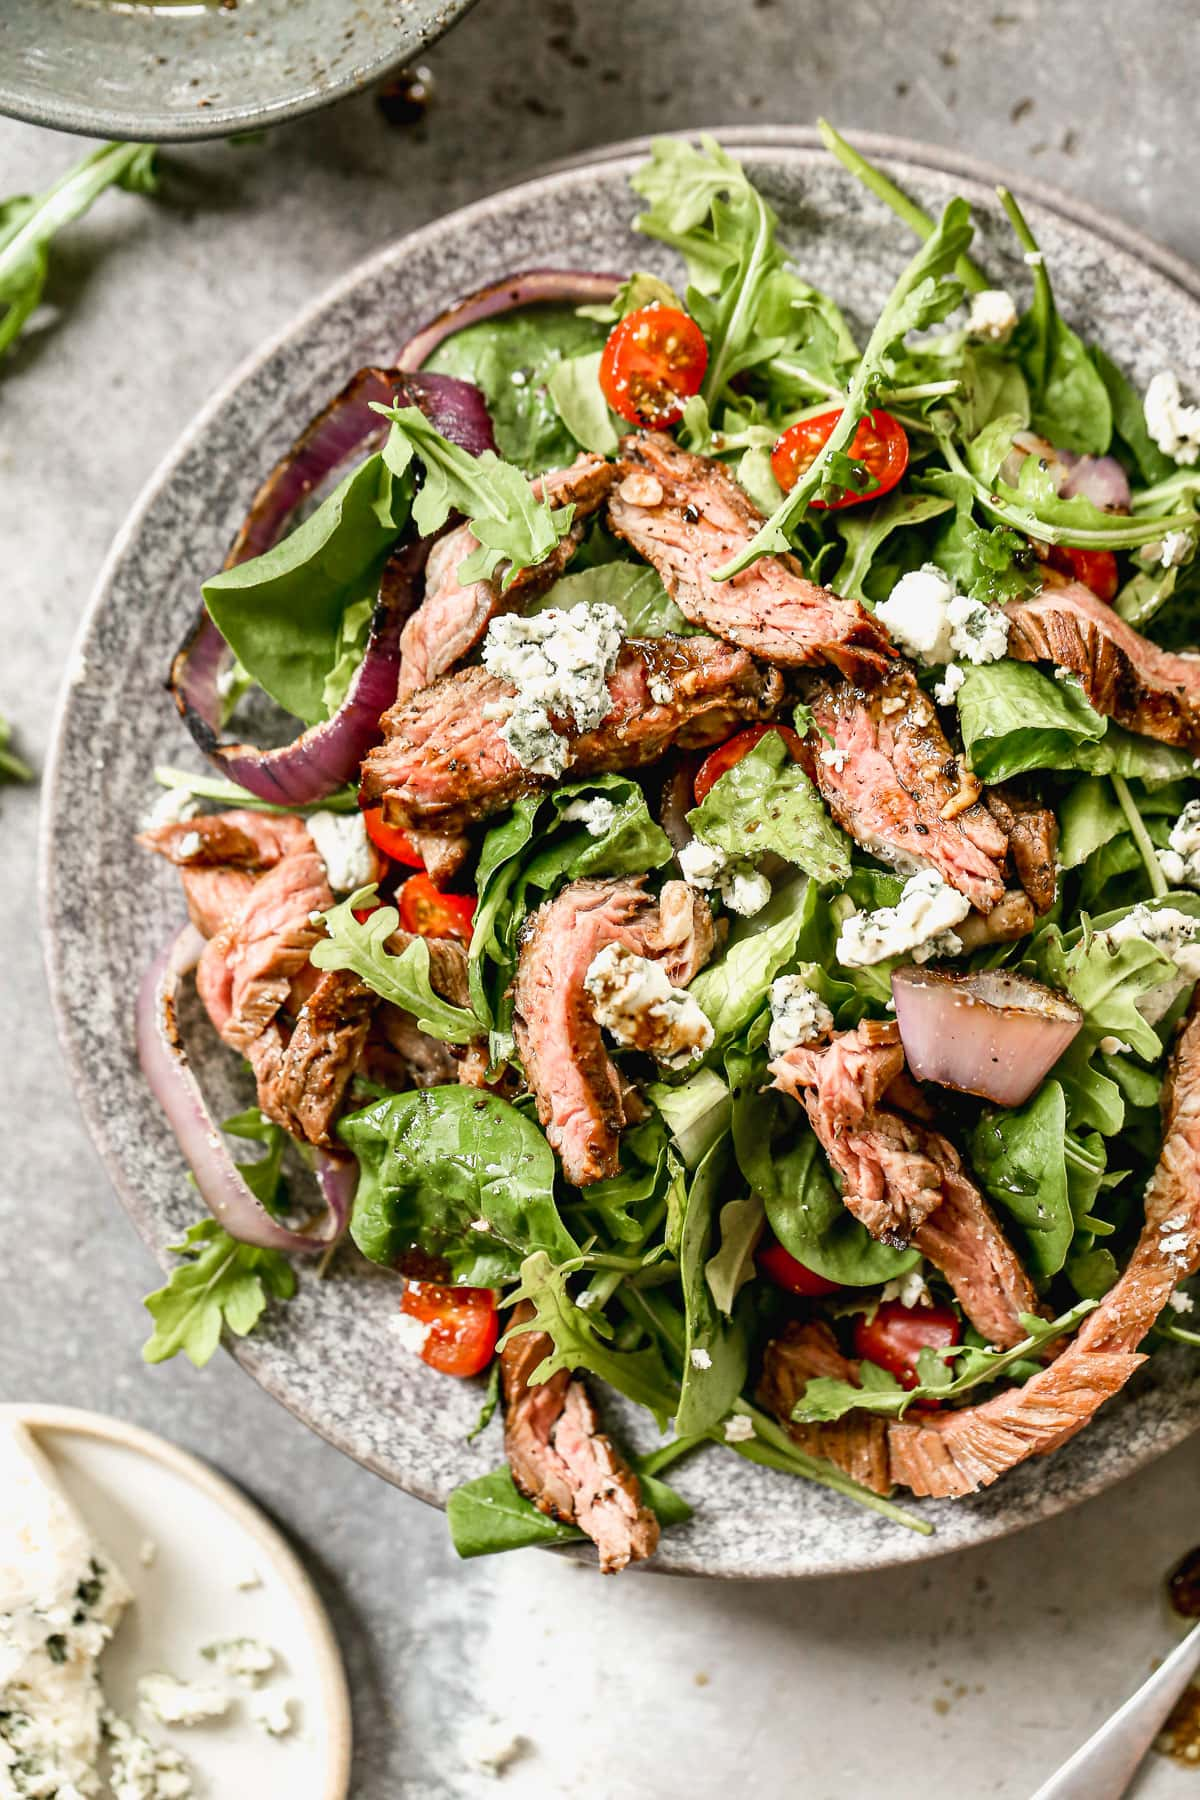 Perfect Grilled Steak Salad with Roasted Vegetables. Gorgeous and healthy!